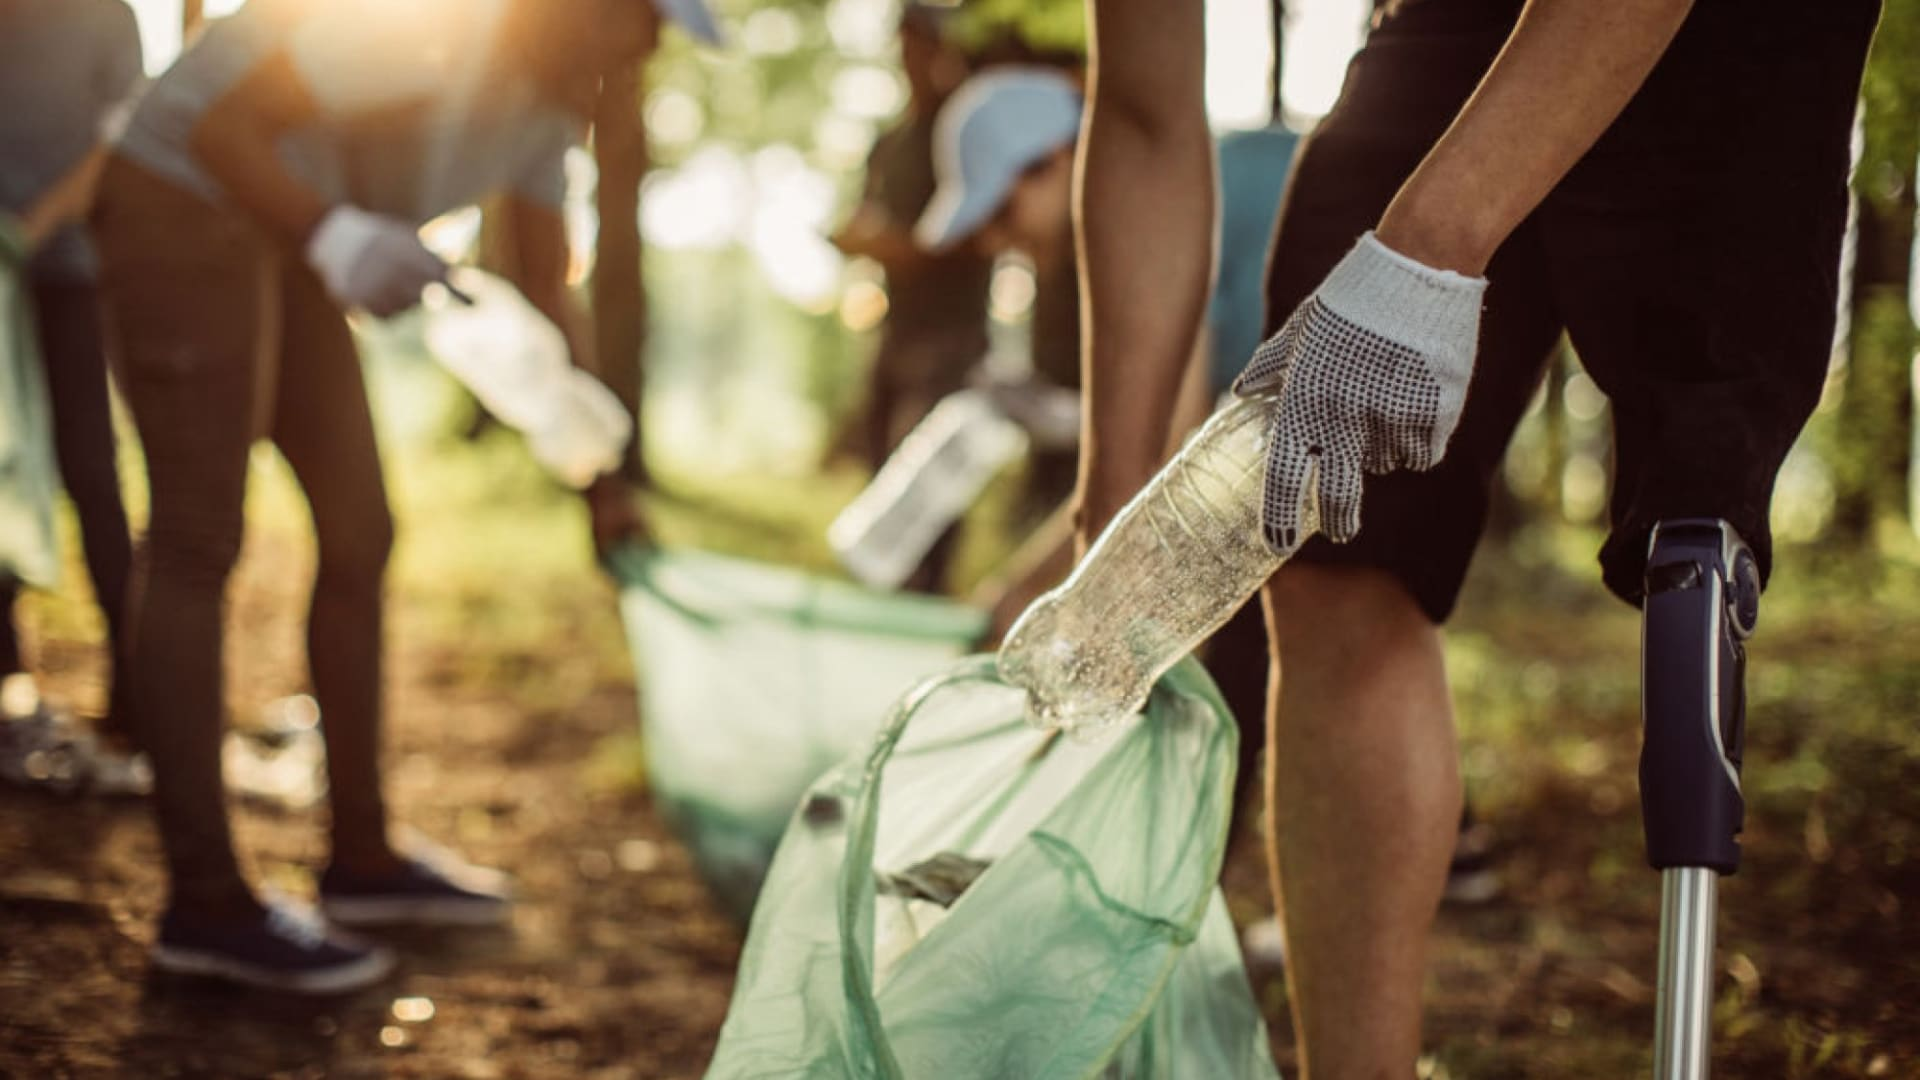 4 Ways to Spread Love and Give Back as an Entrepreneur